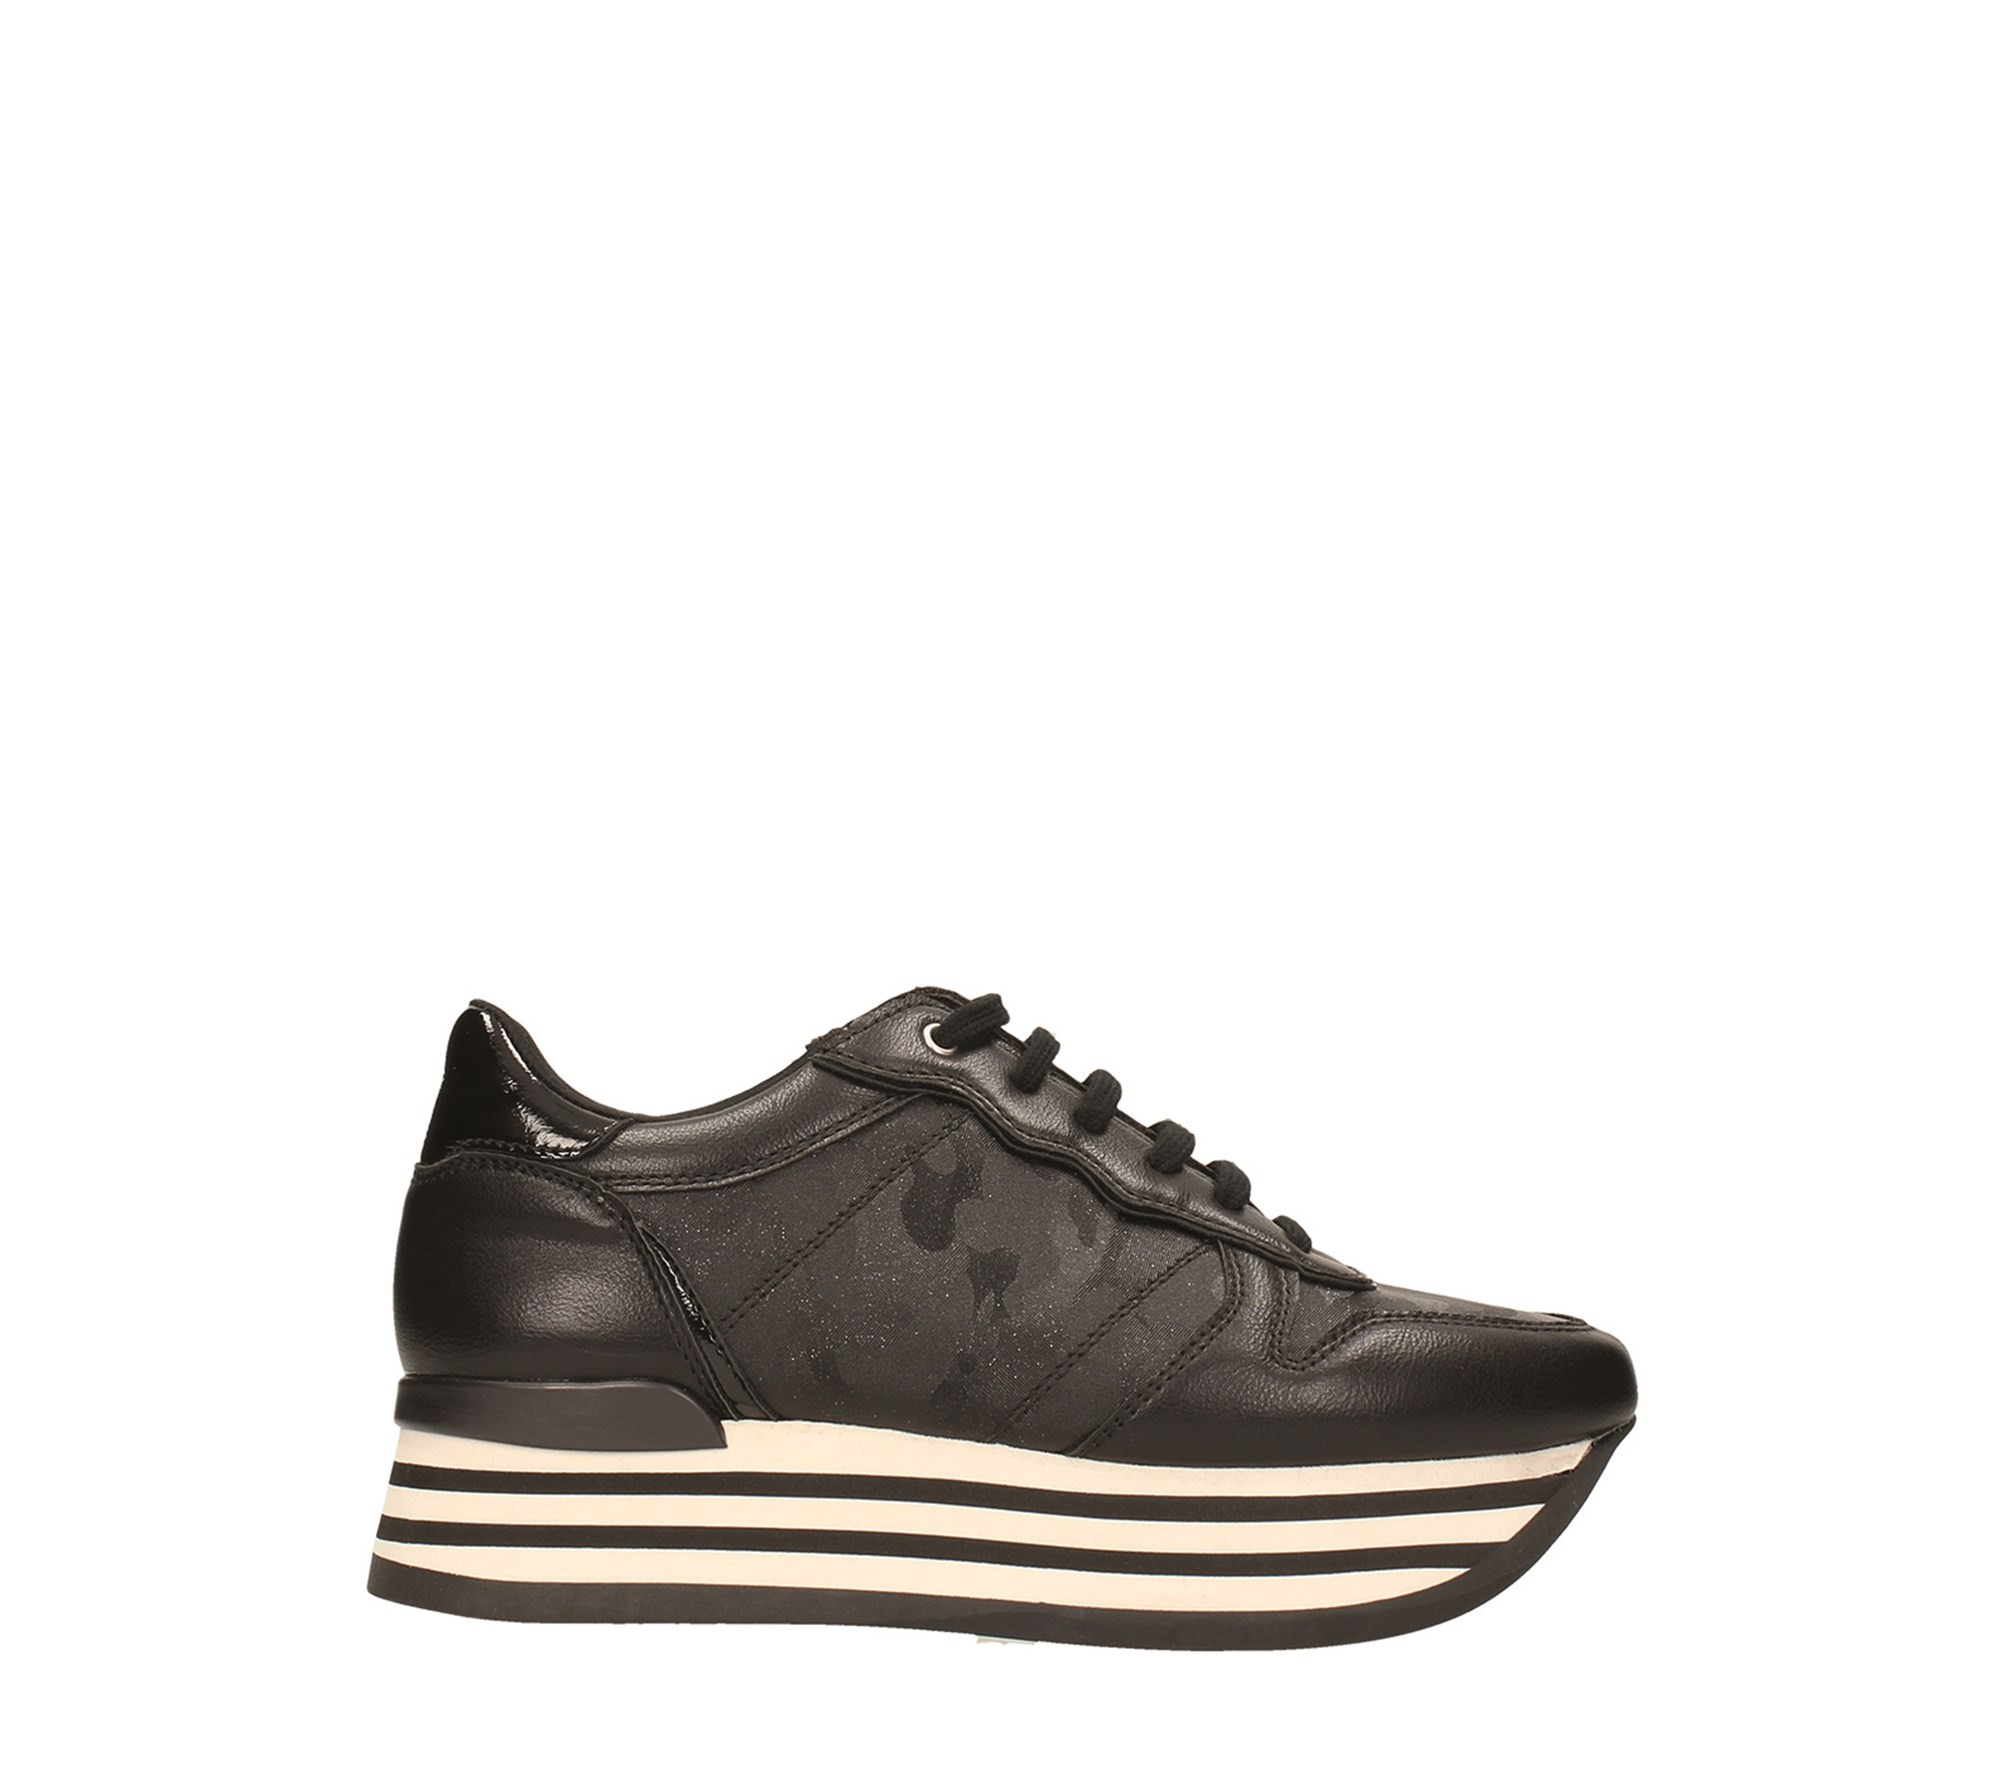 Tata Italia Shoes Woman Sneakers 810381-W-P